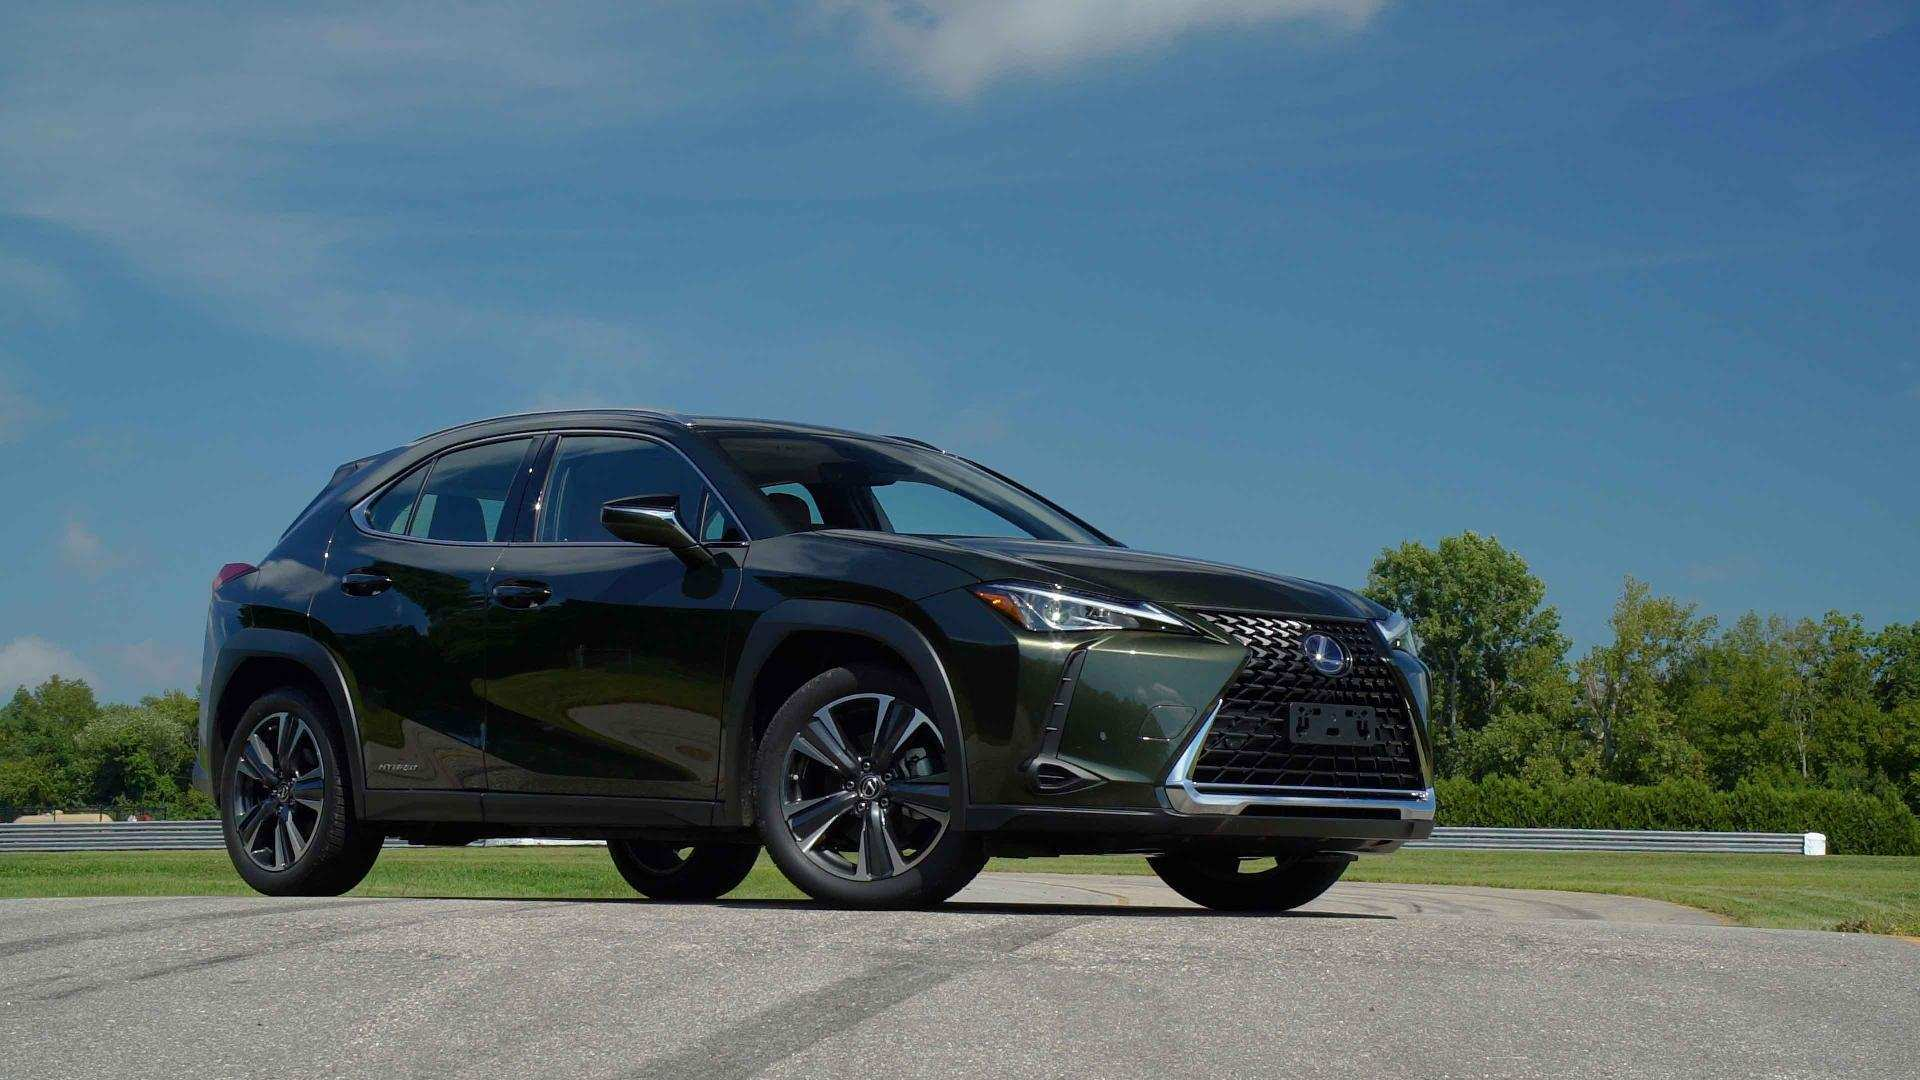 79 All New 2019 Lexus Ux Canada New Review for 2019 Lexus Ux Canada